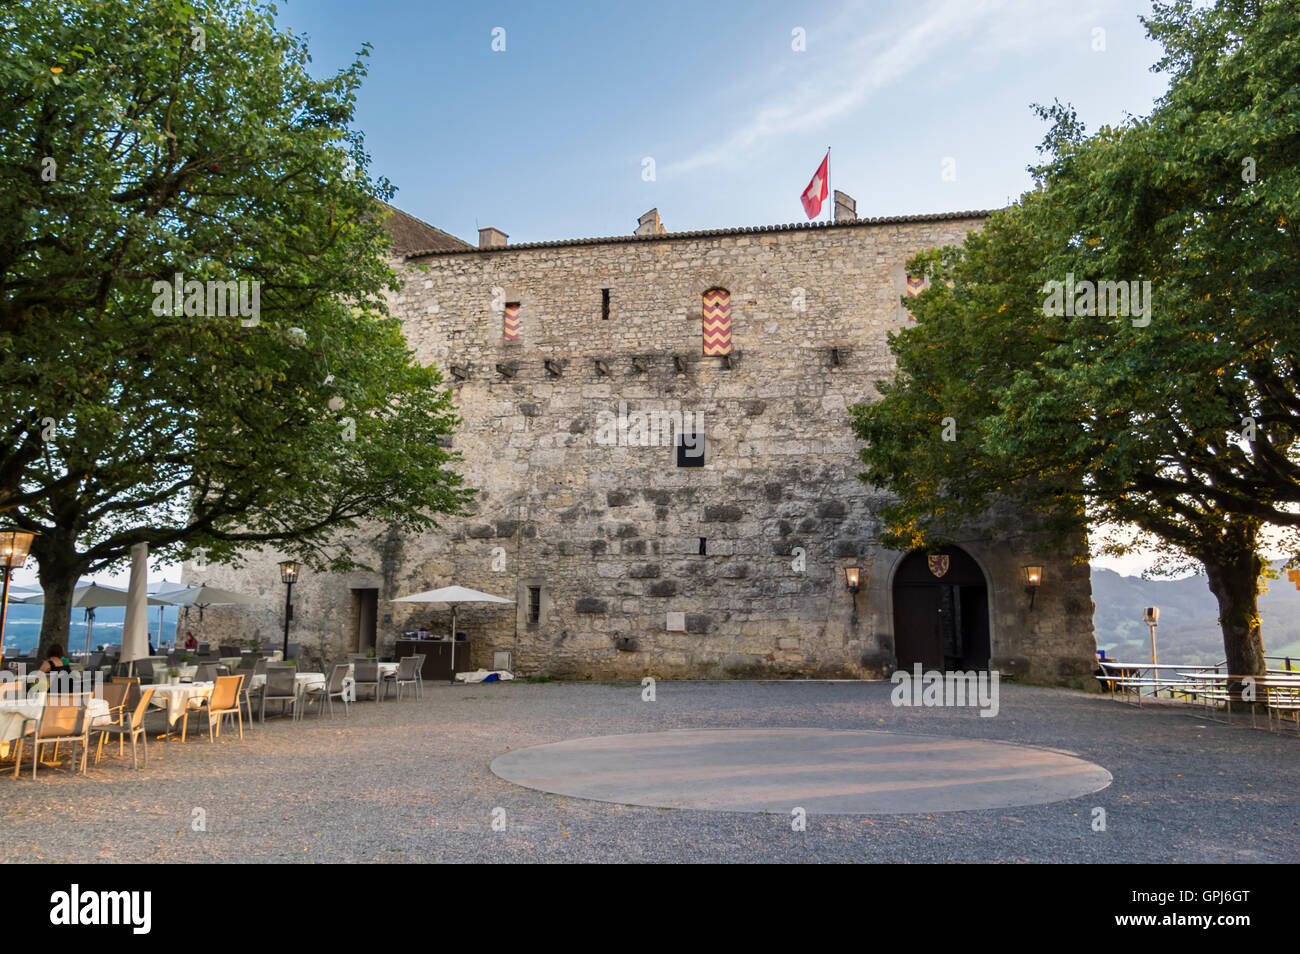 Habsburg castle, the originating seat of the House of Habsburg. View from the courtyard. Aargau, Switzerland. - Stock Image